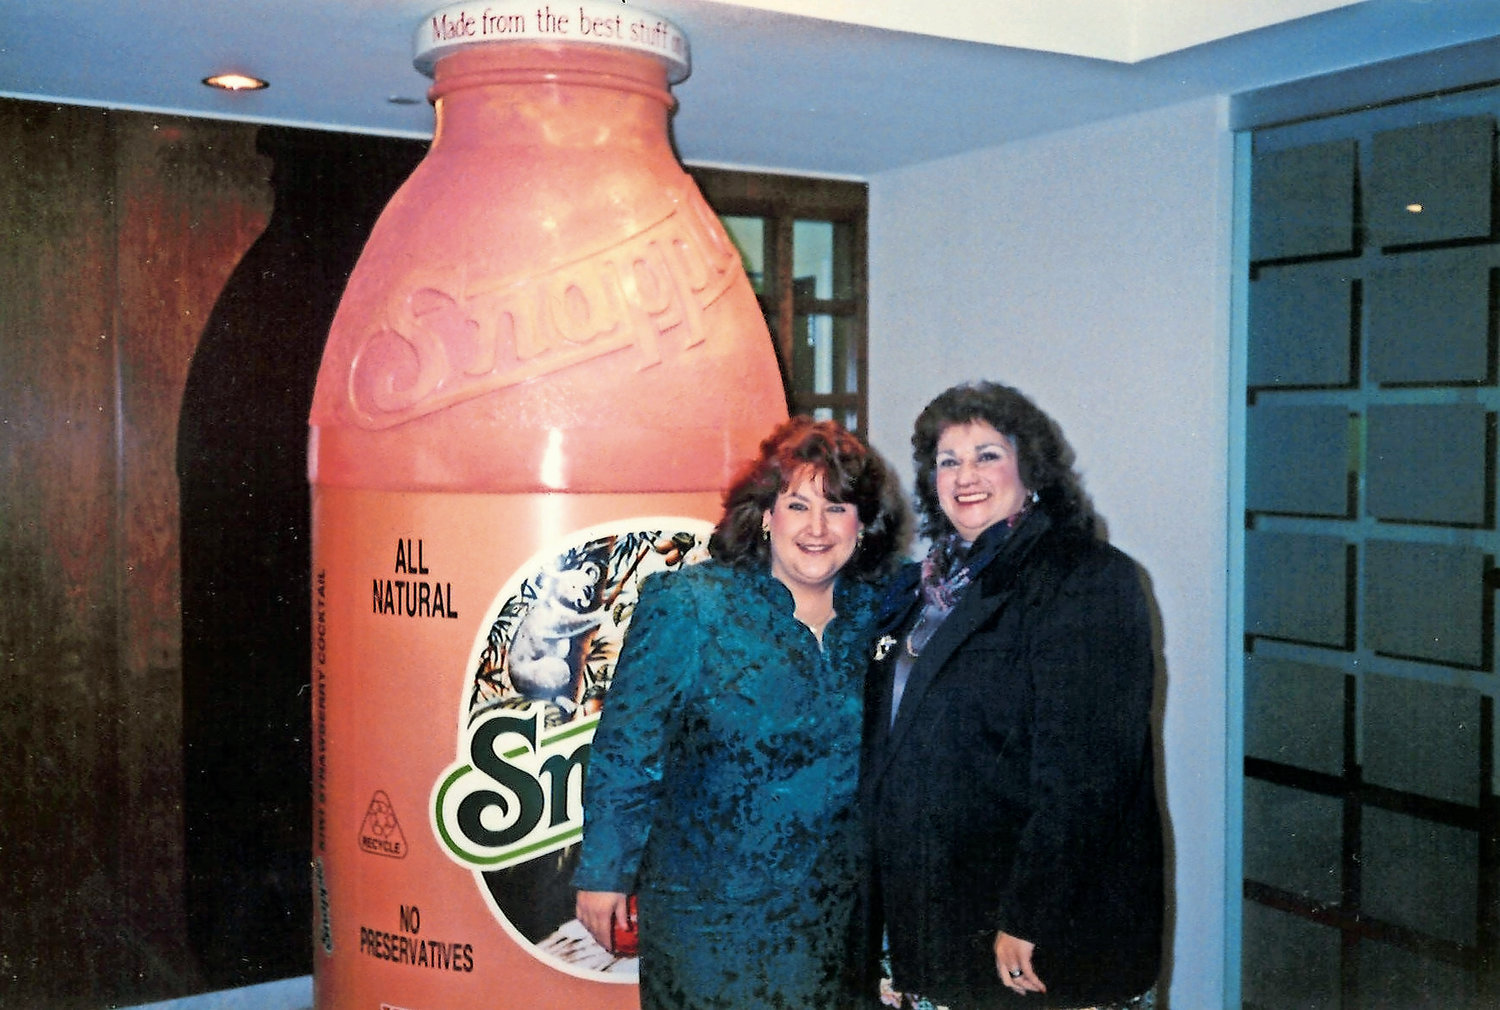 Long Island Breakfast Club founder Valentina Janek, right, met former Snapple spokeswoman Wendy Kaufman during her look-alike competition at a Snapple convention about 16 years ago at Hofstra University.